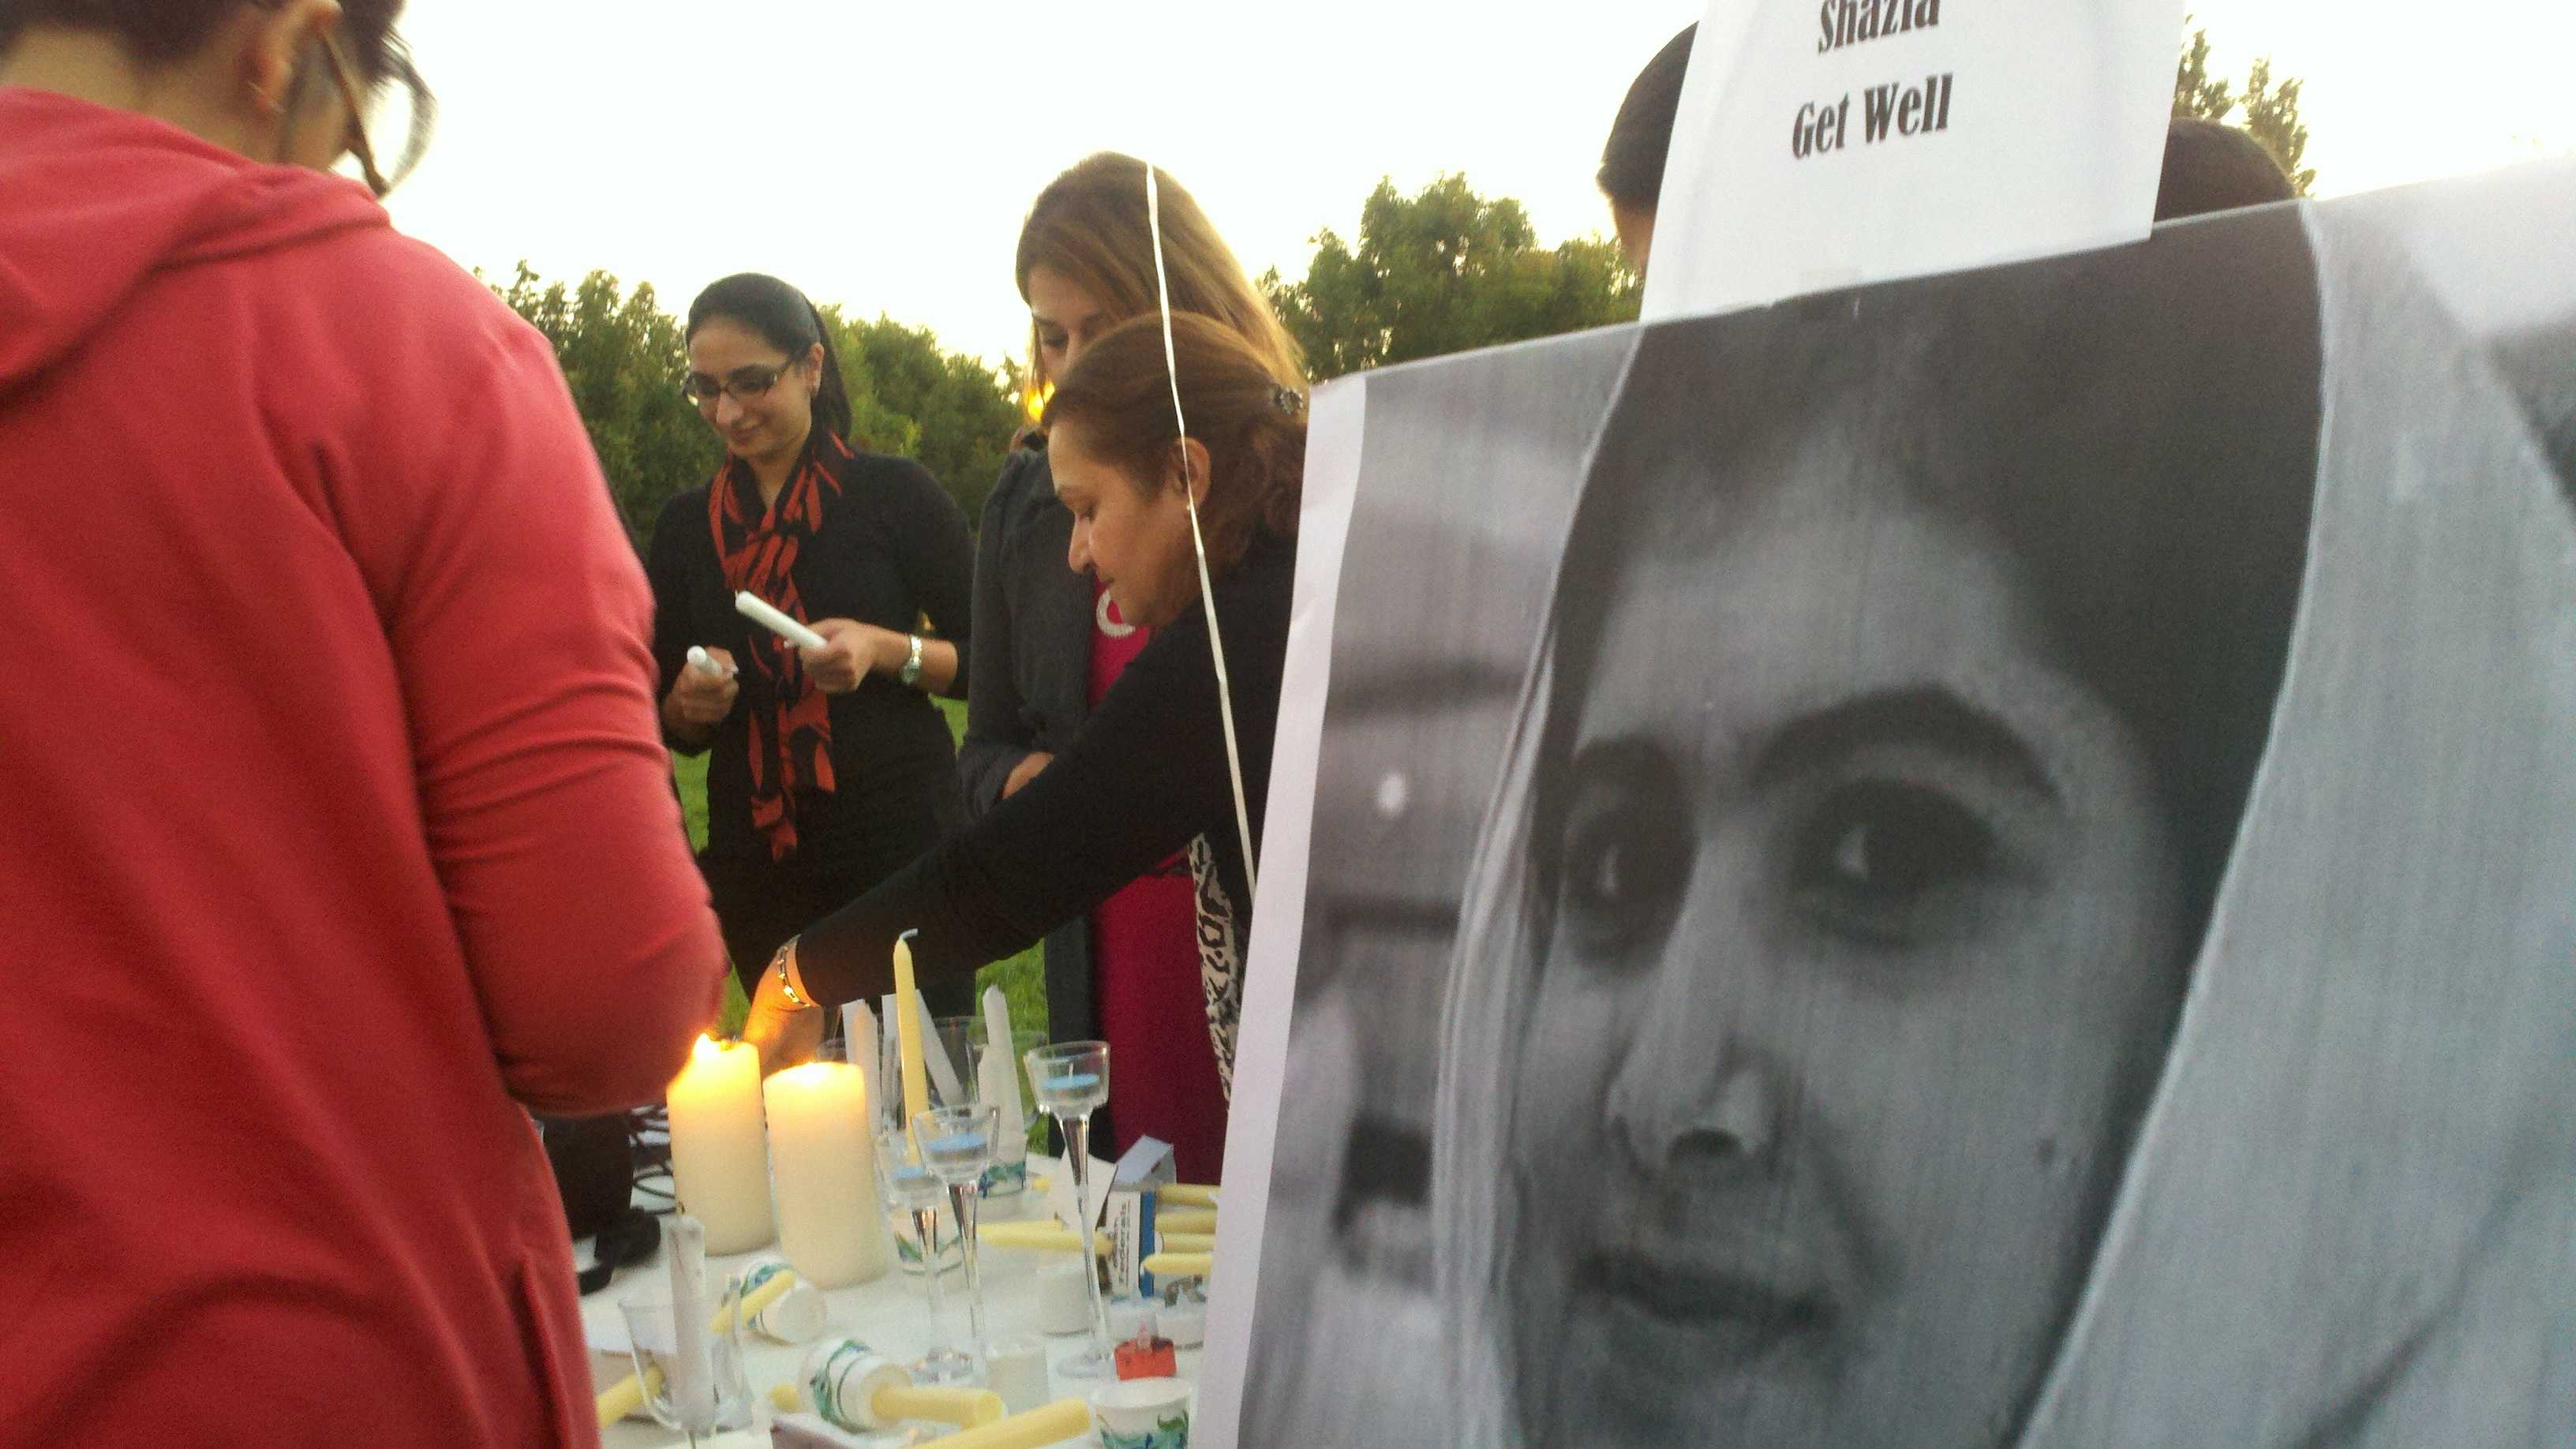 Supporters in Stockton held a candlelight vigil for Malala Yousufzai, who was critically wounded by a Taliban gunman in Pakistan.